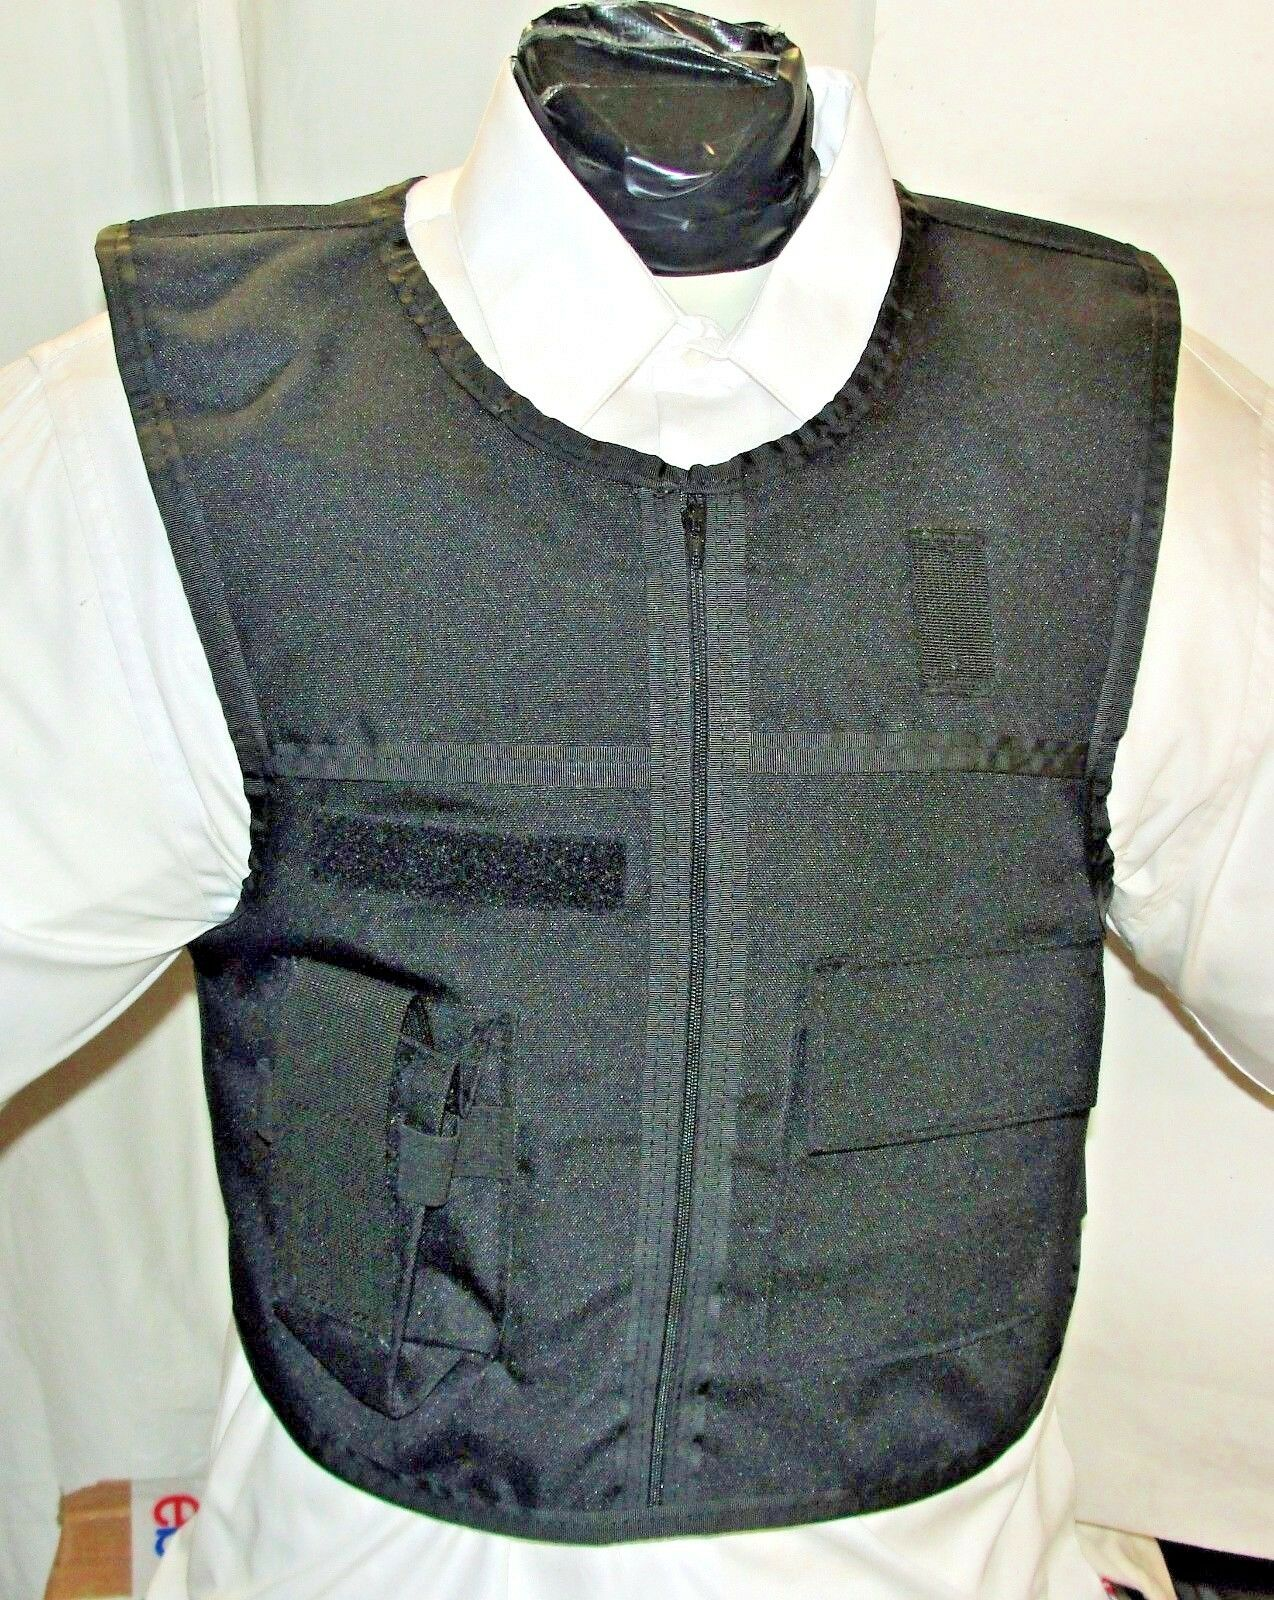 New Med Patrol Duty Vest Plate Carrier IIIA Body Armor BulletProof with Inserts